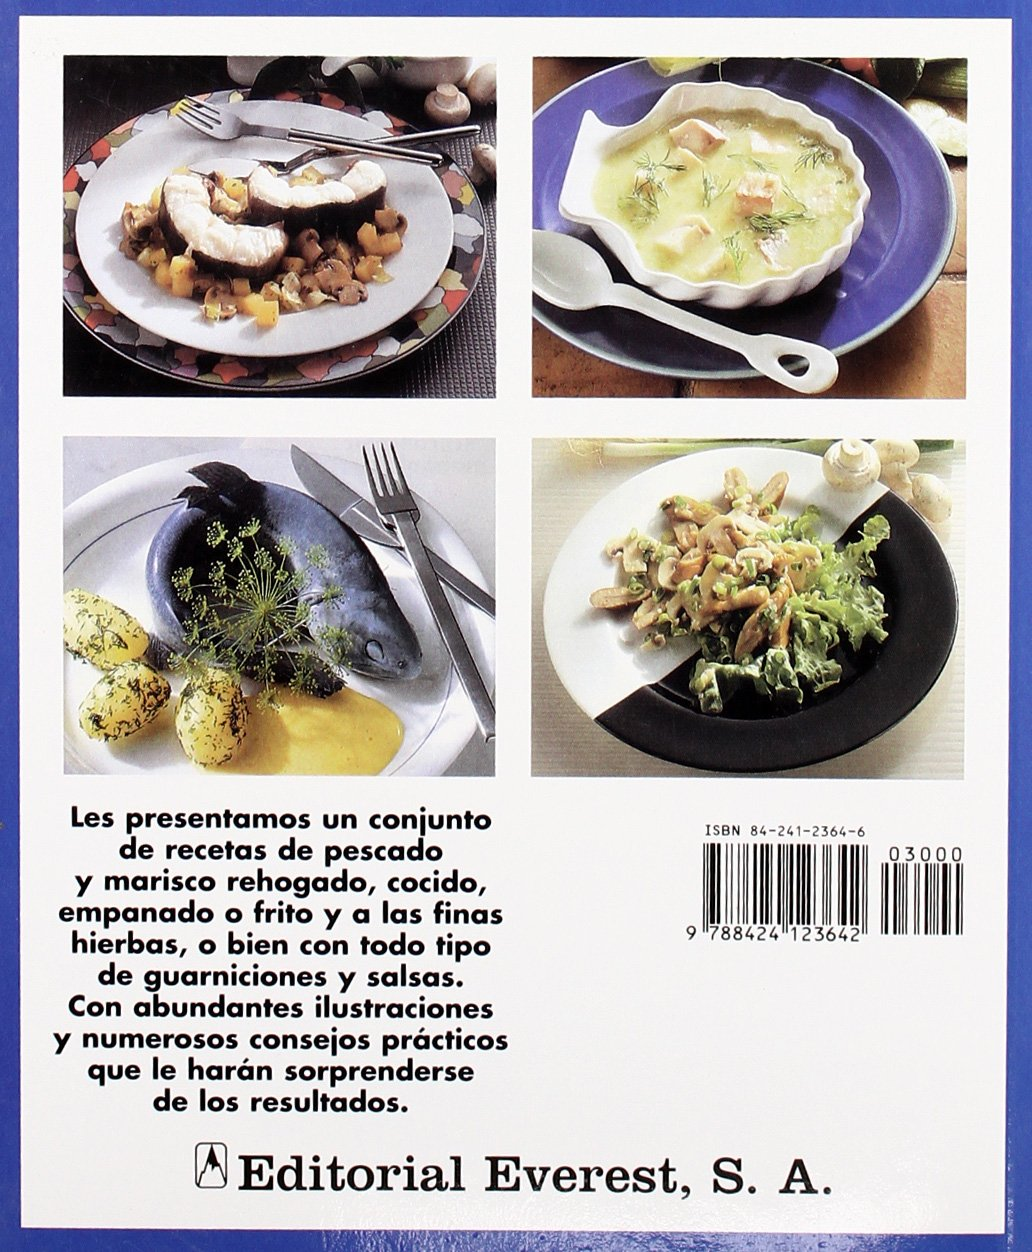 Pescado y Marisco (Spanish Edition): Cornelia Adam: 9788424123642: Amazon.com: Books